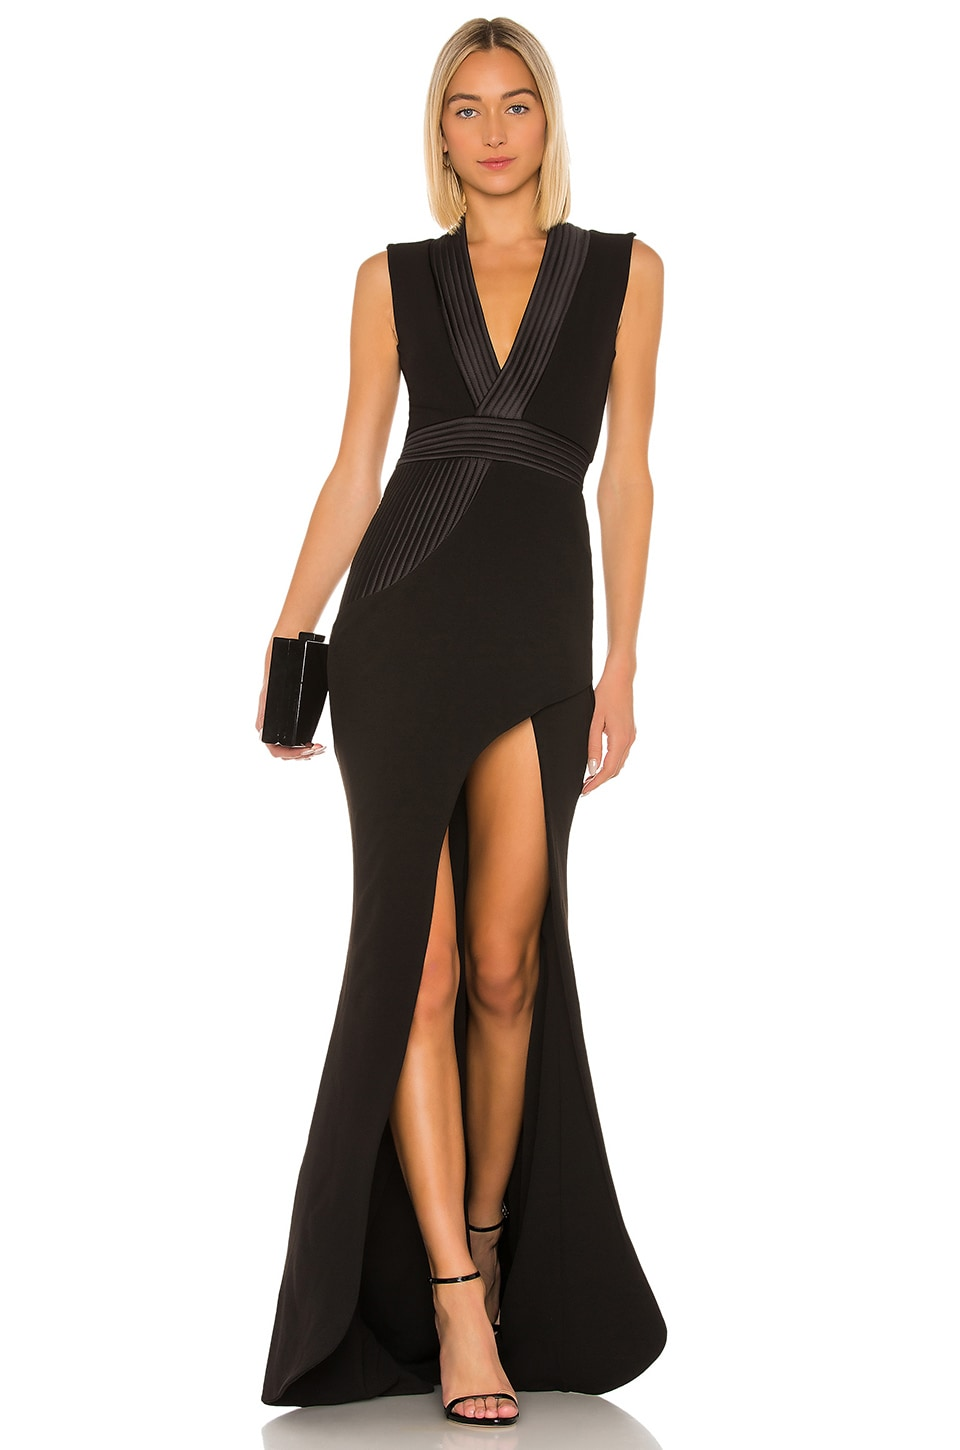 Zhivago Nullarbor Gown in Black